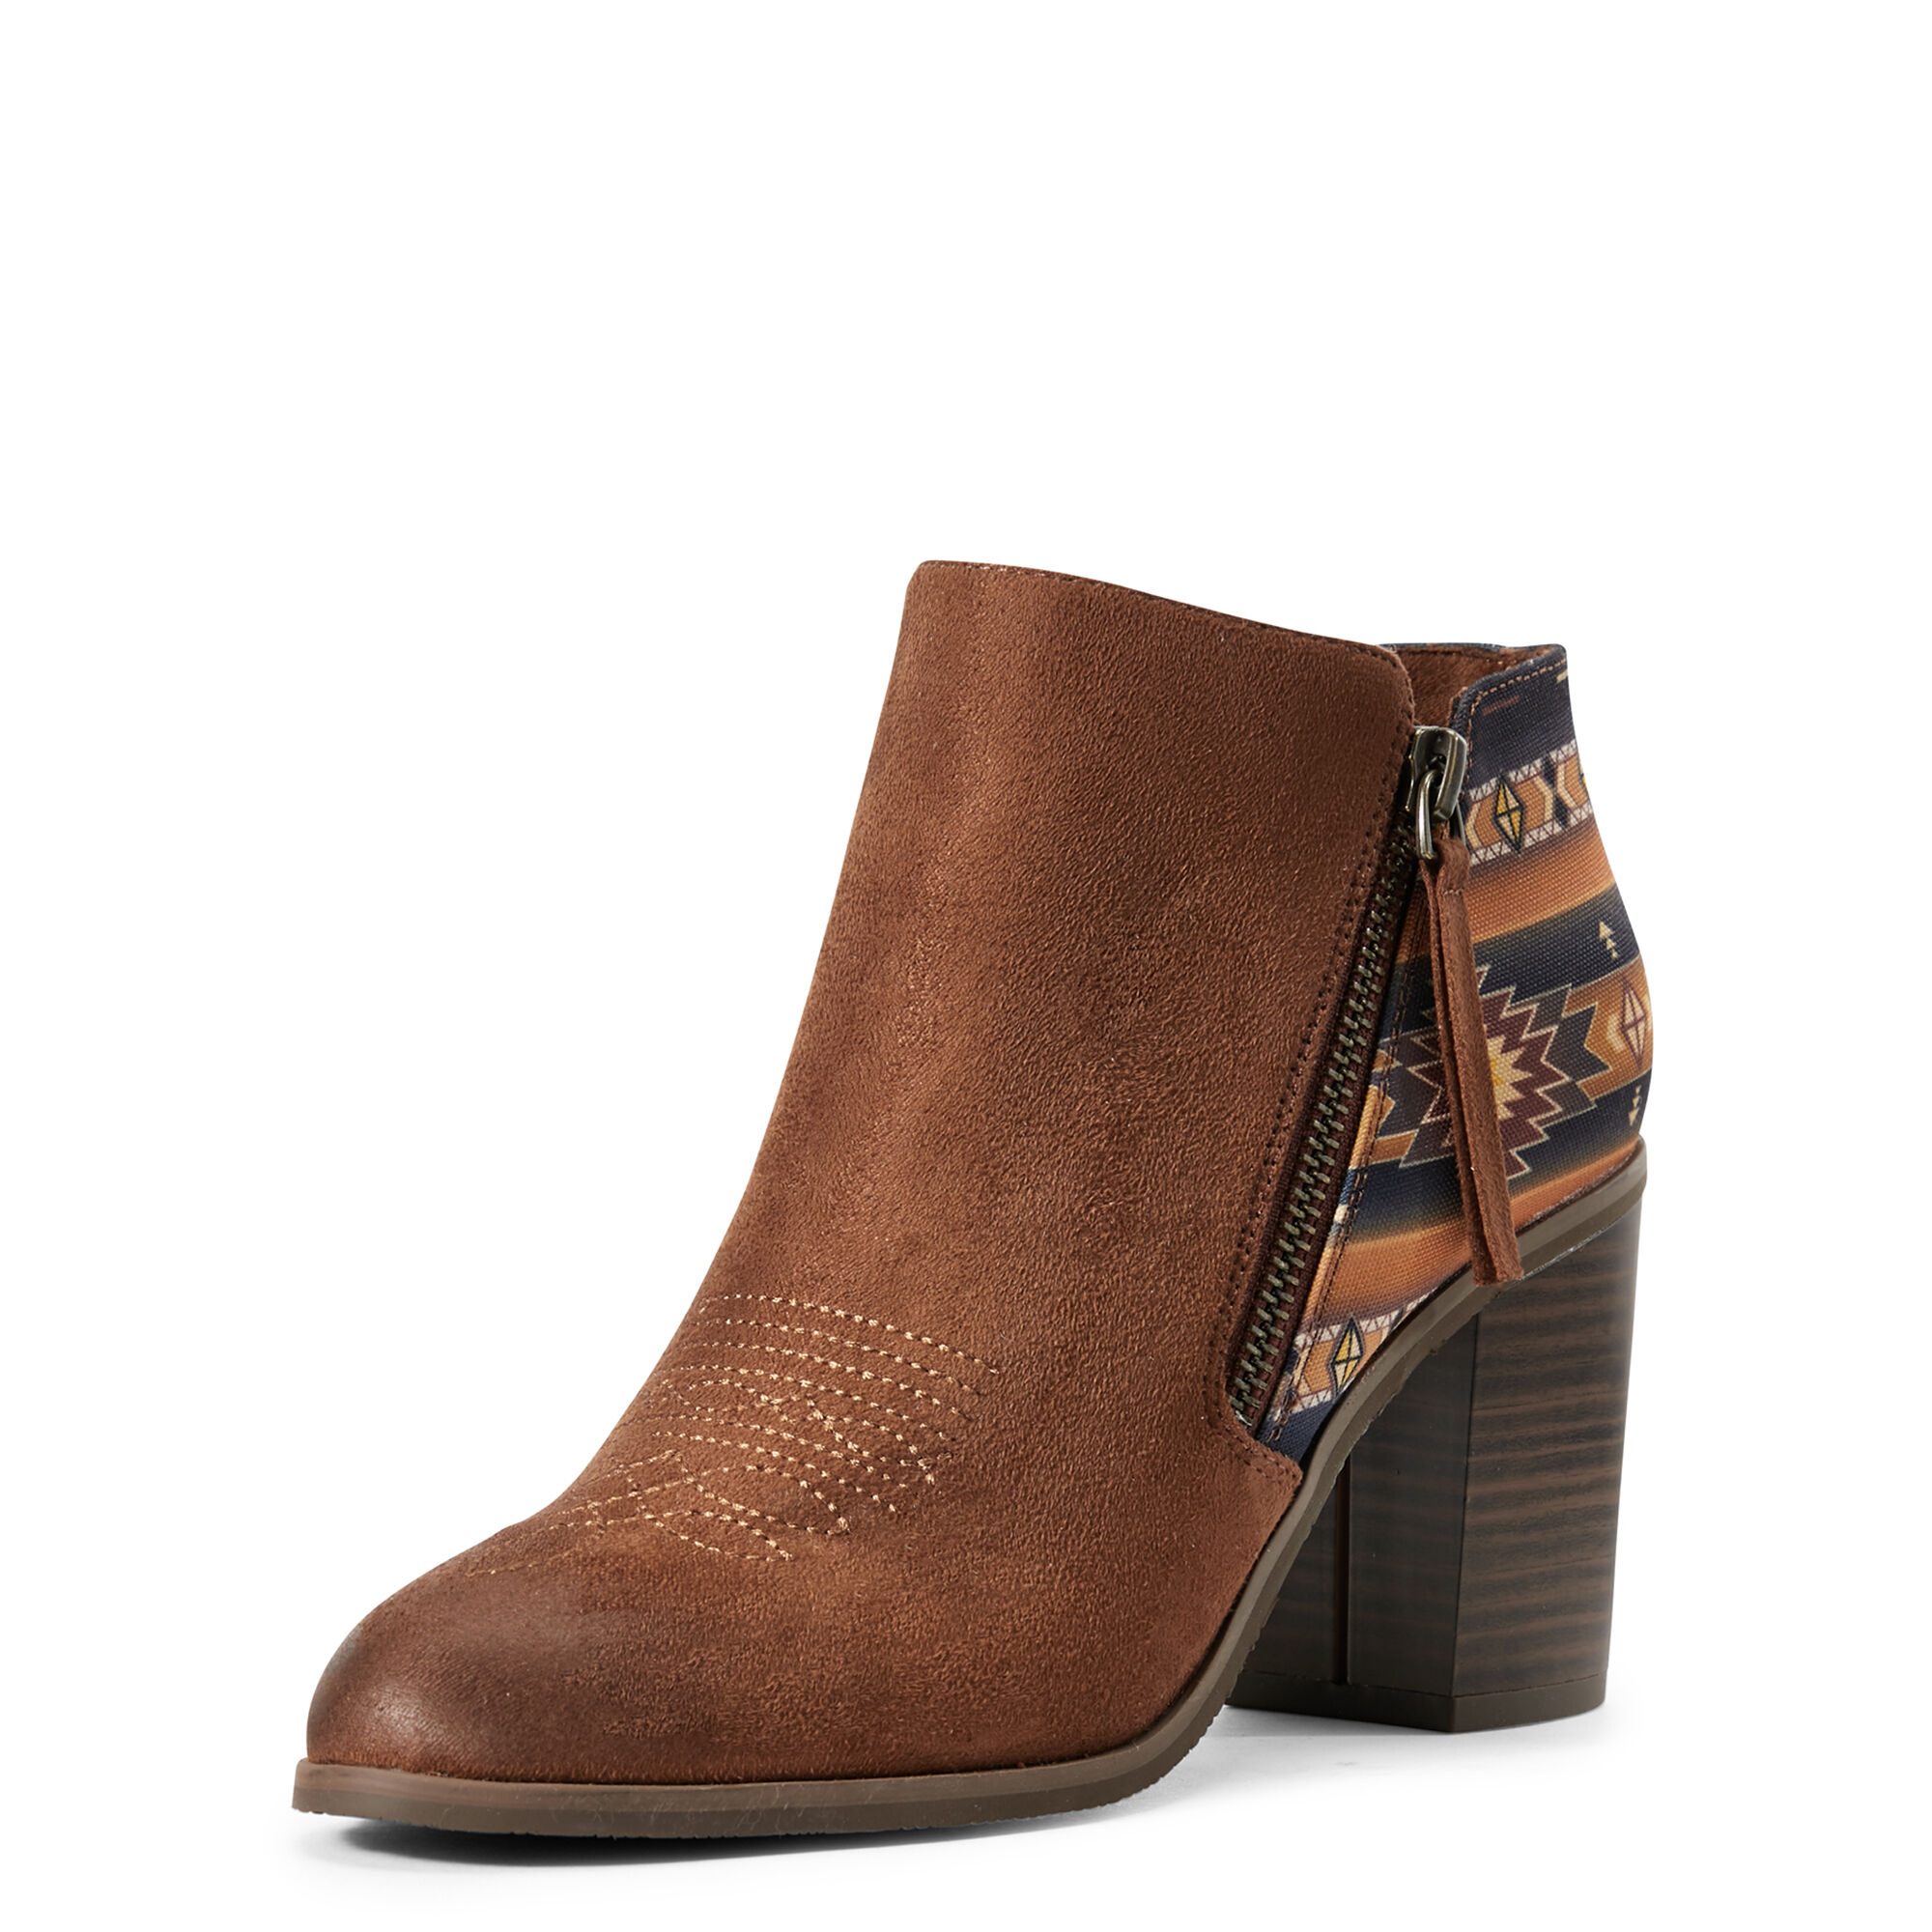 Women's Unbridled Kaylee Boots in Cognac Suede by Ariat